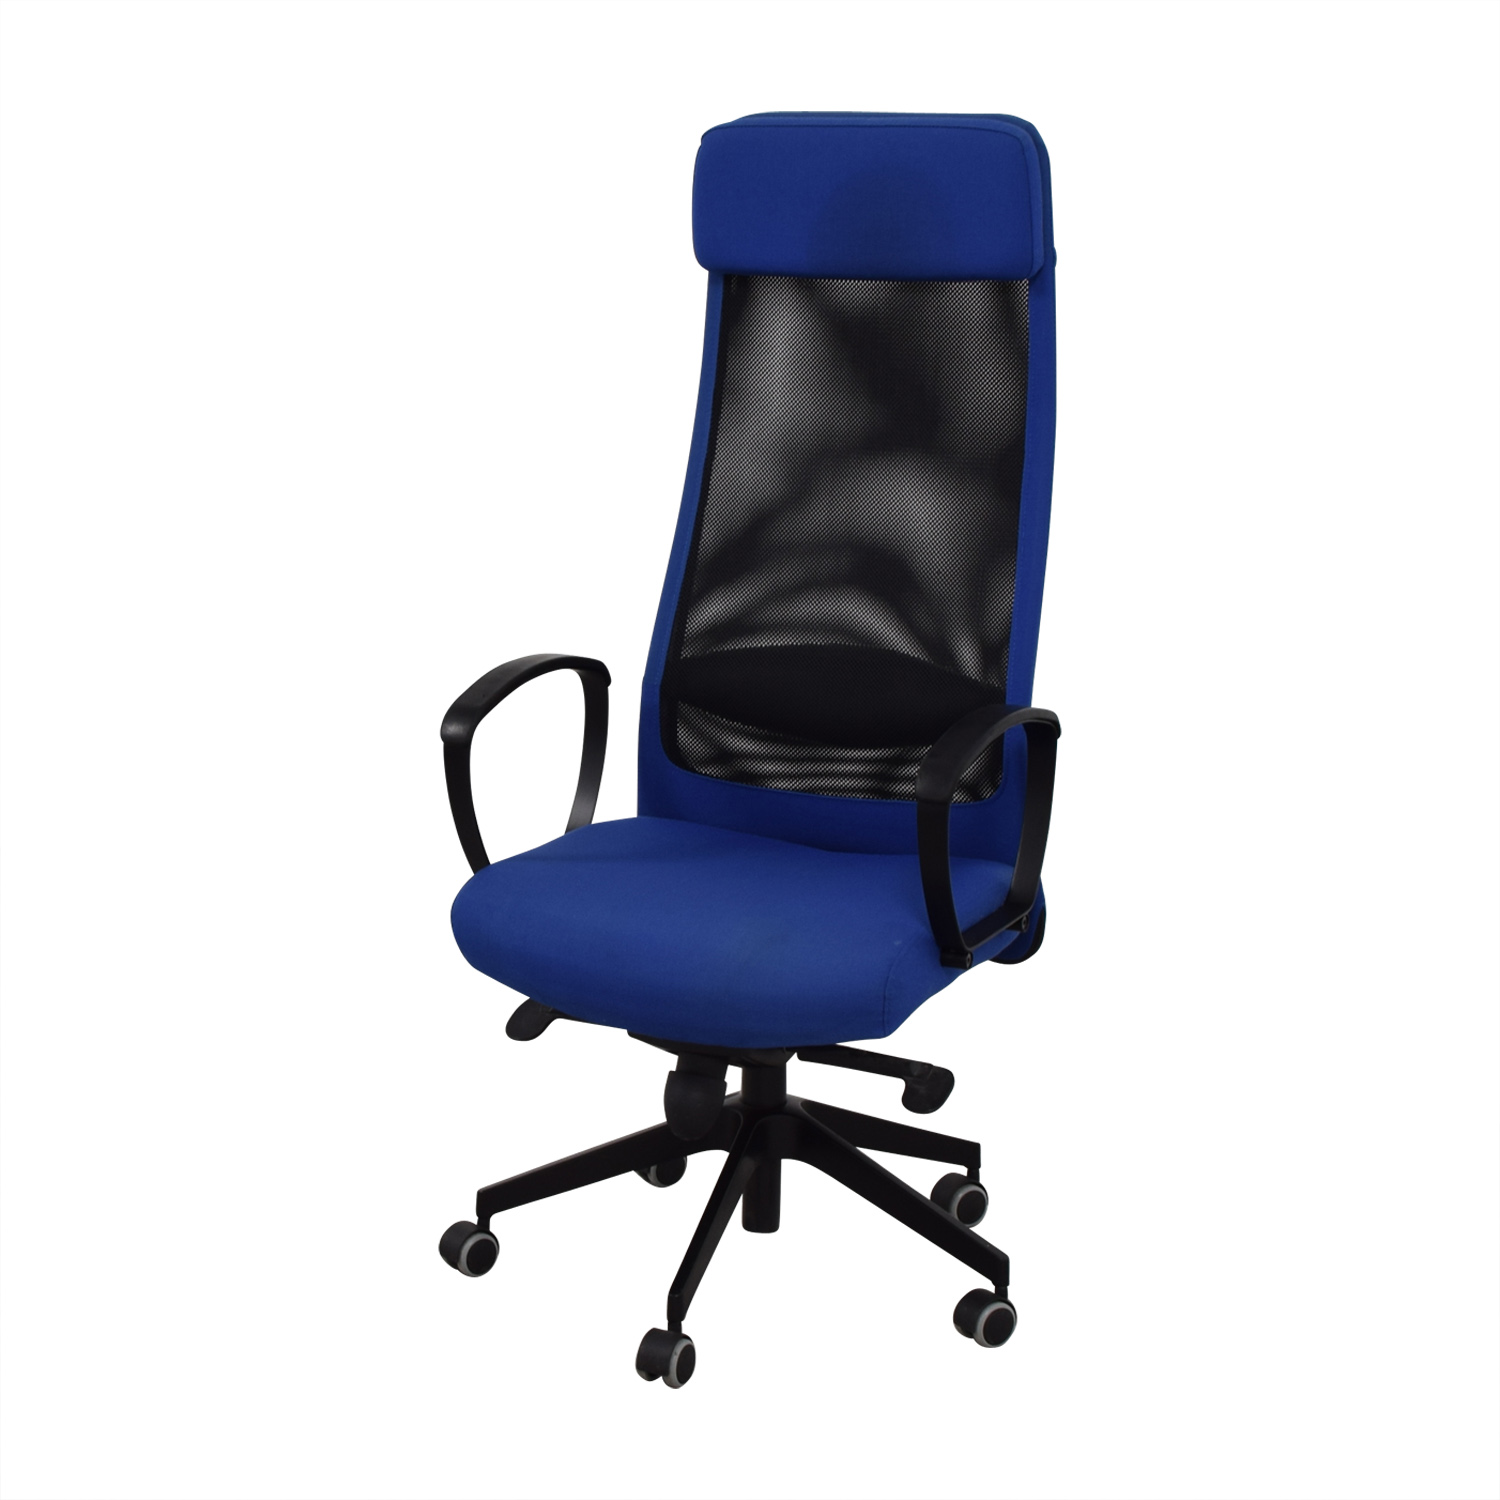 Blue Swivel Chair 82 Off Ikea Ikea Markus Blue Swivel Chair Chairs